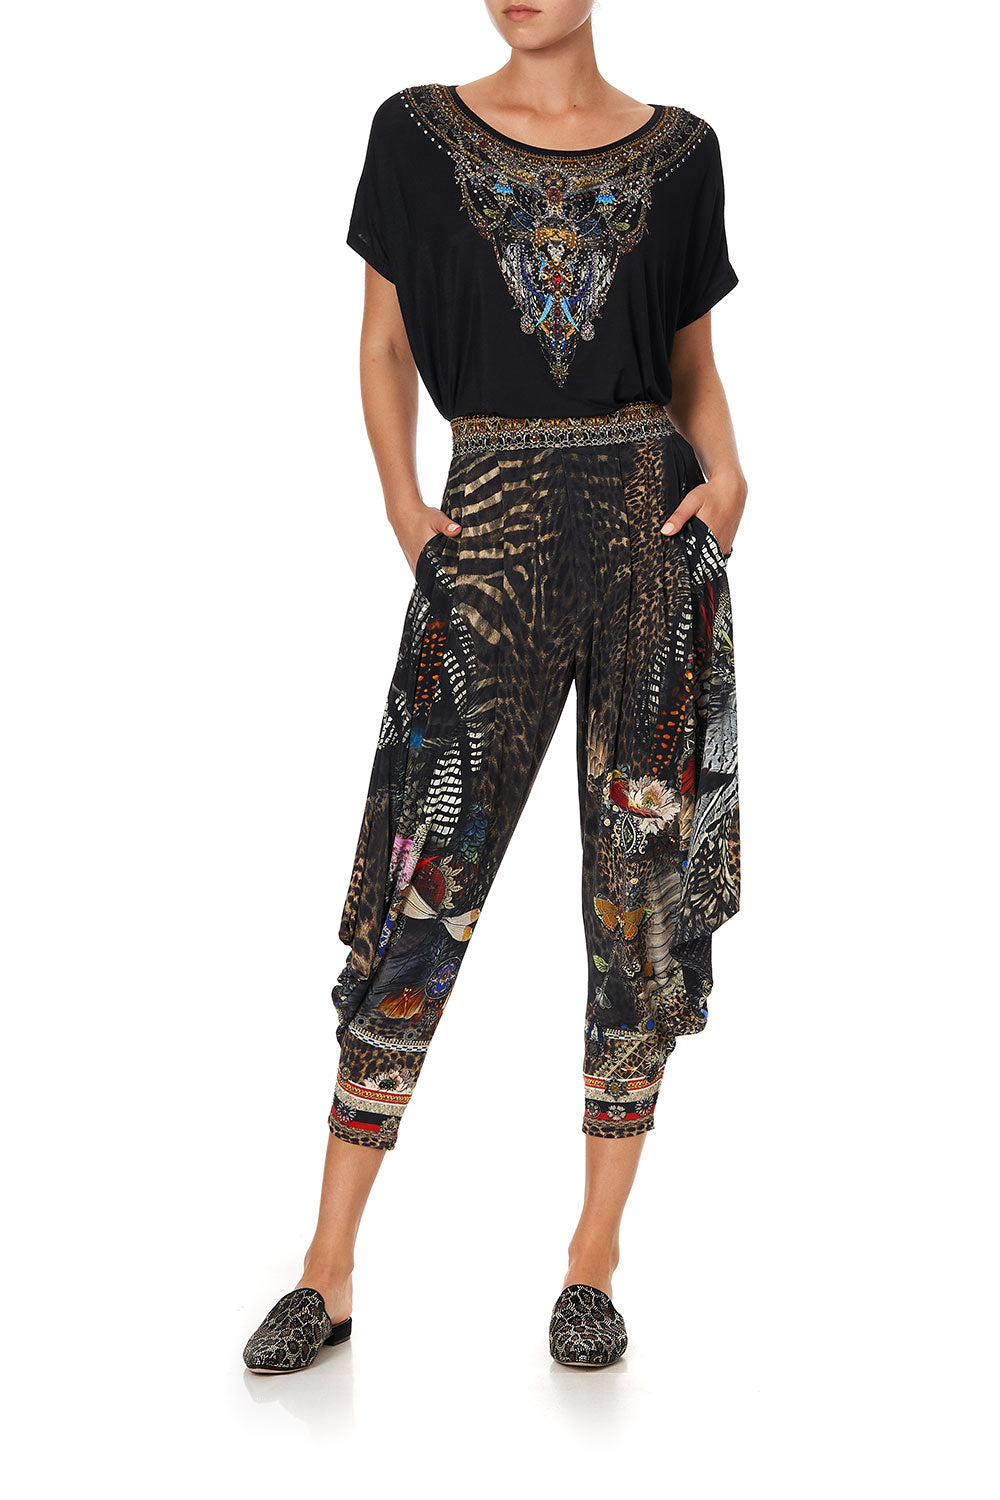 JERSEY DRAPE PANT WITH POCKET TREASURE CHASER